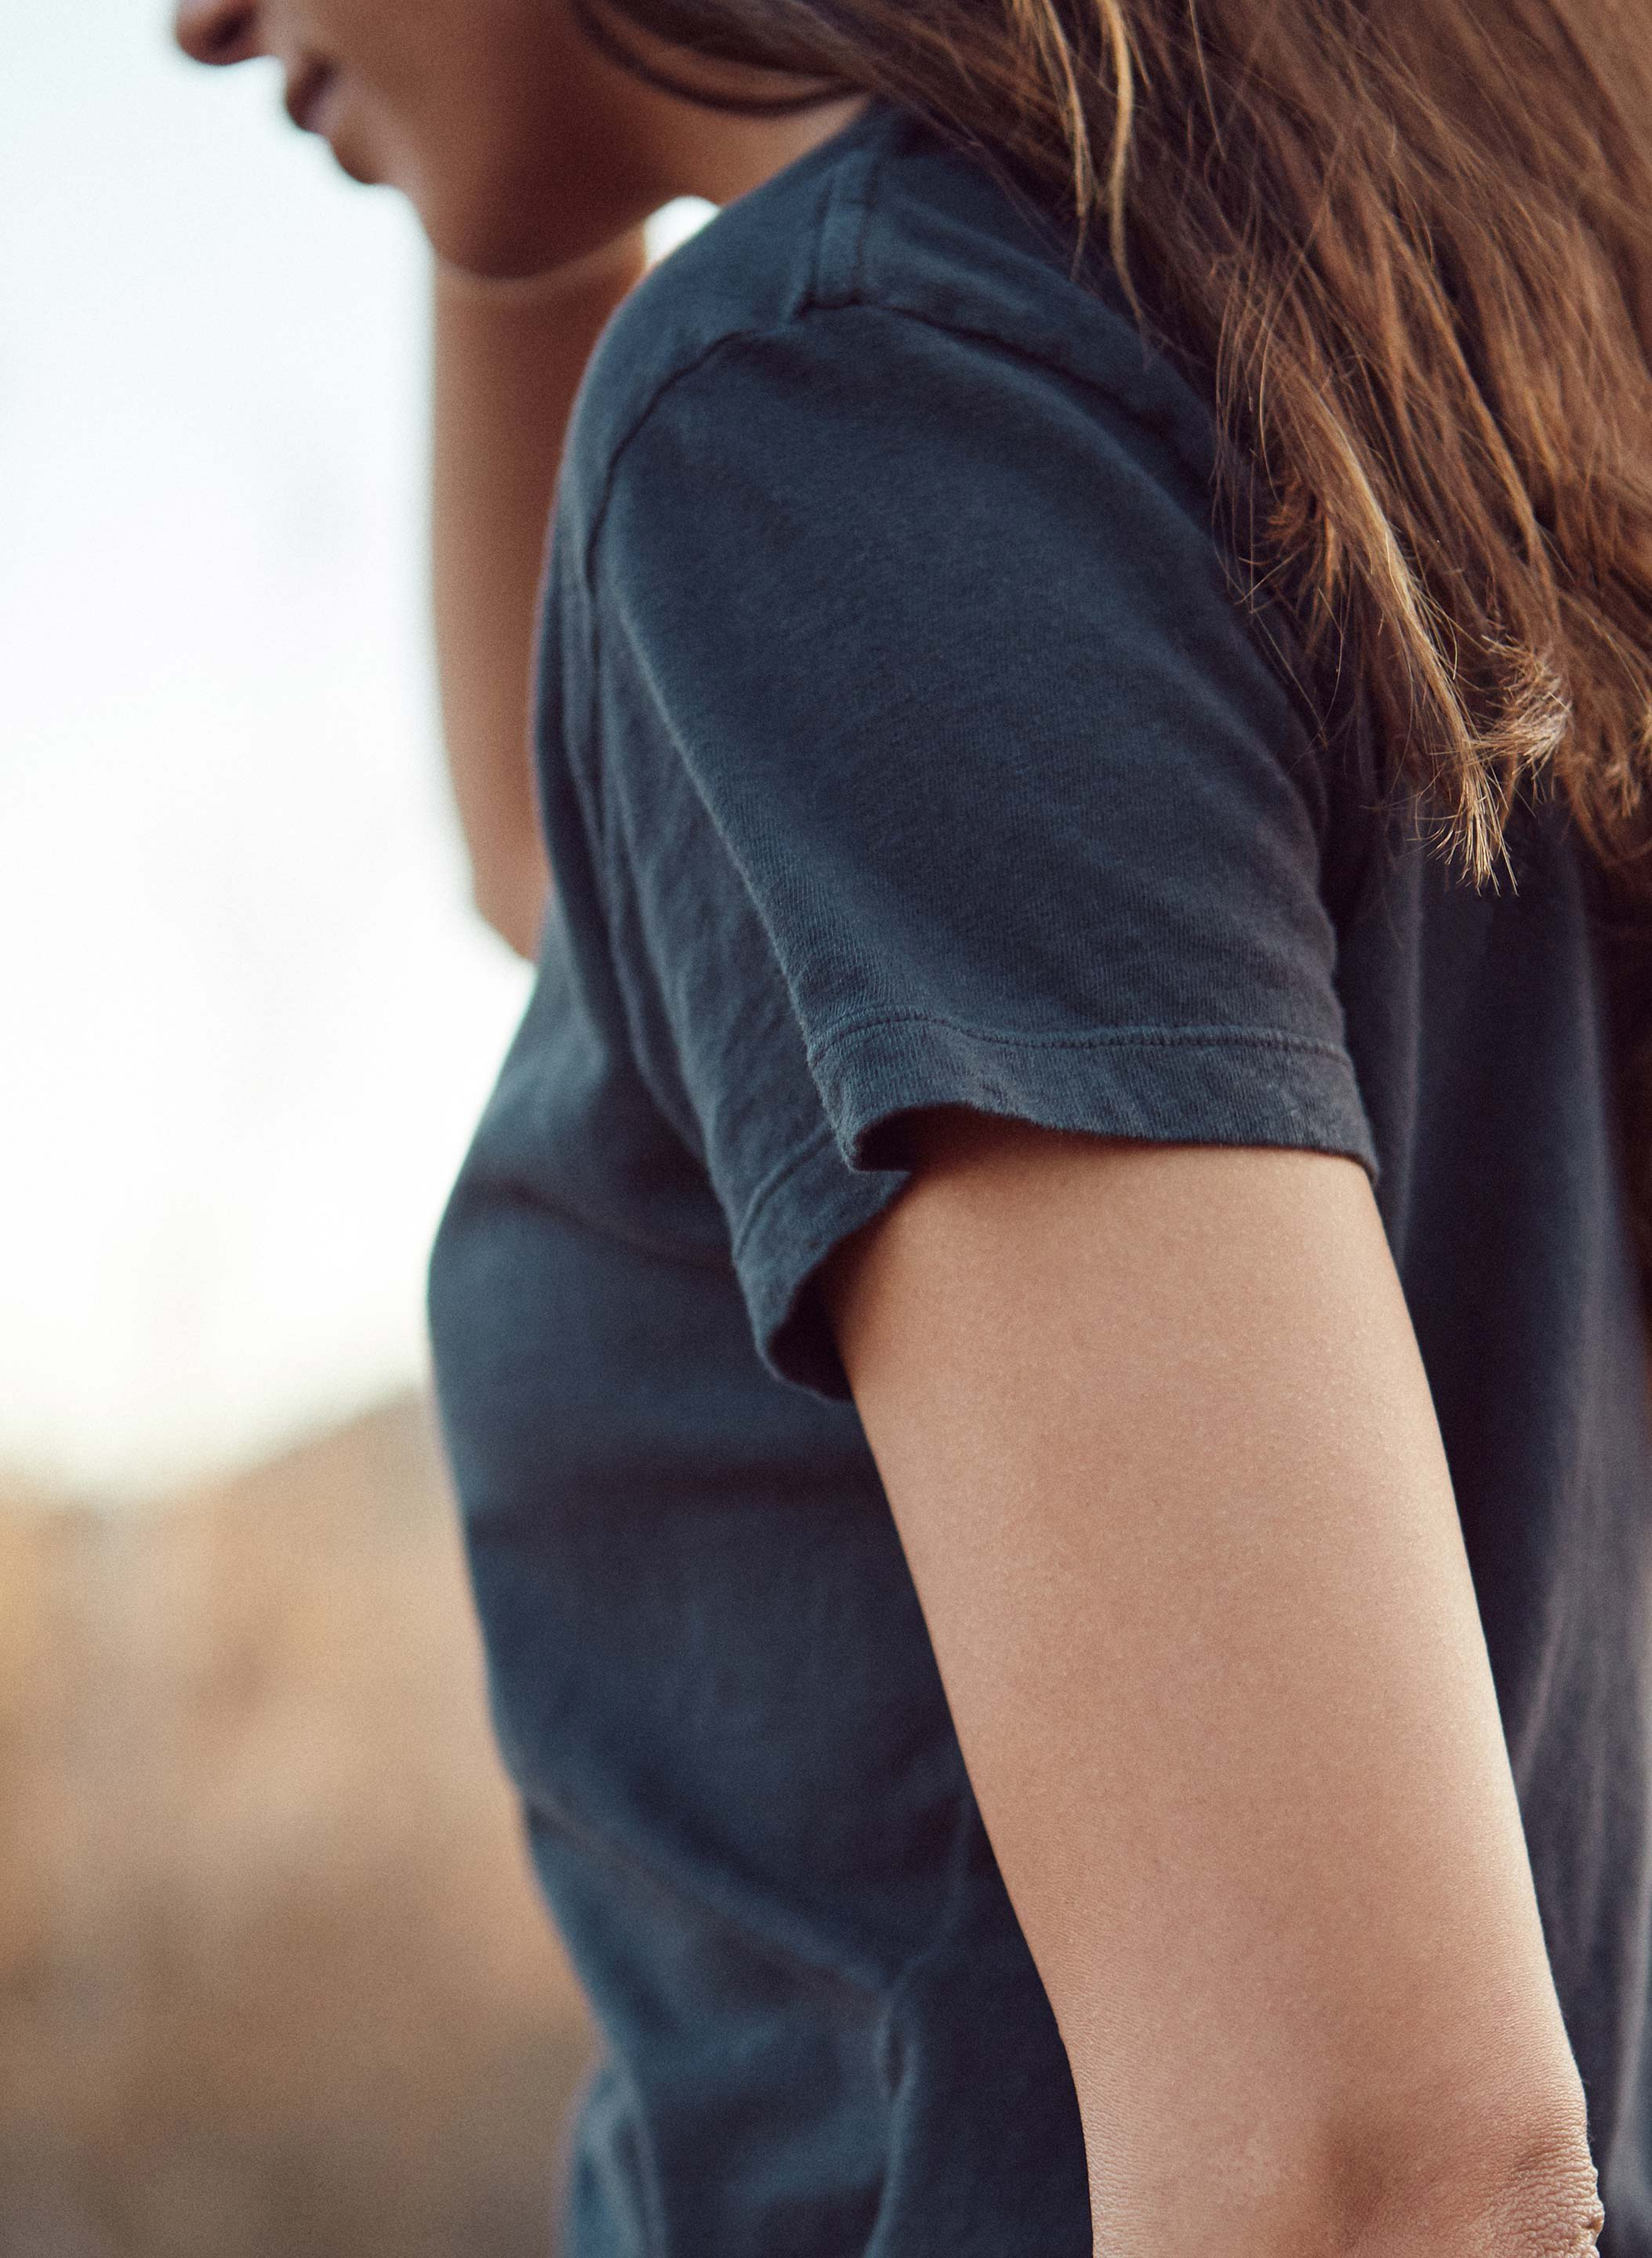 imogene + willie - the drop tee in faded black